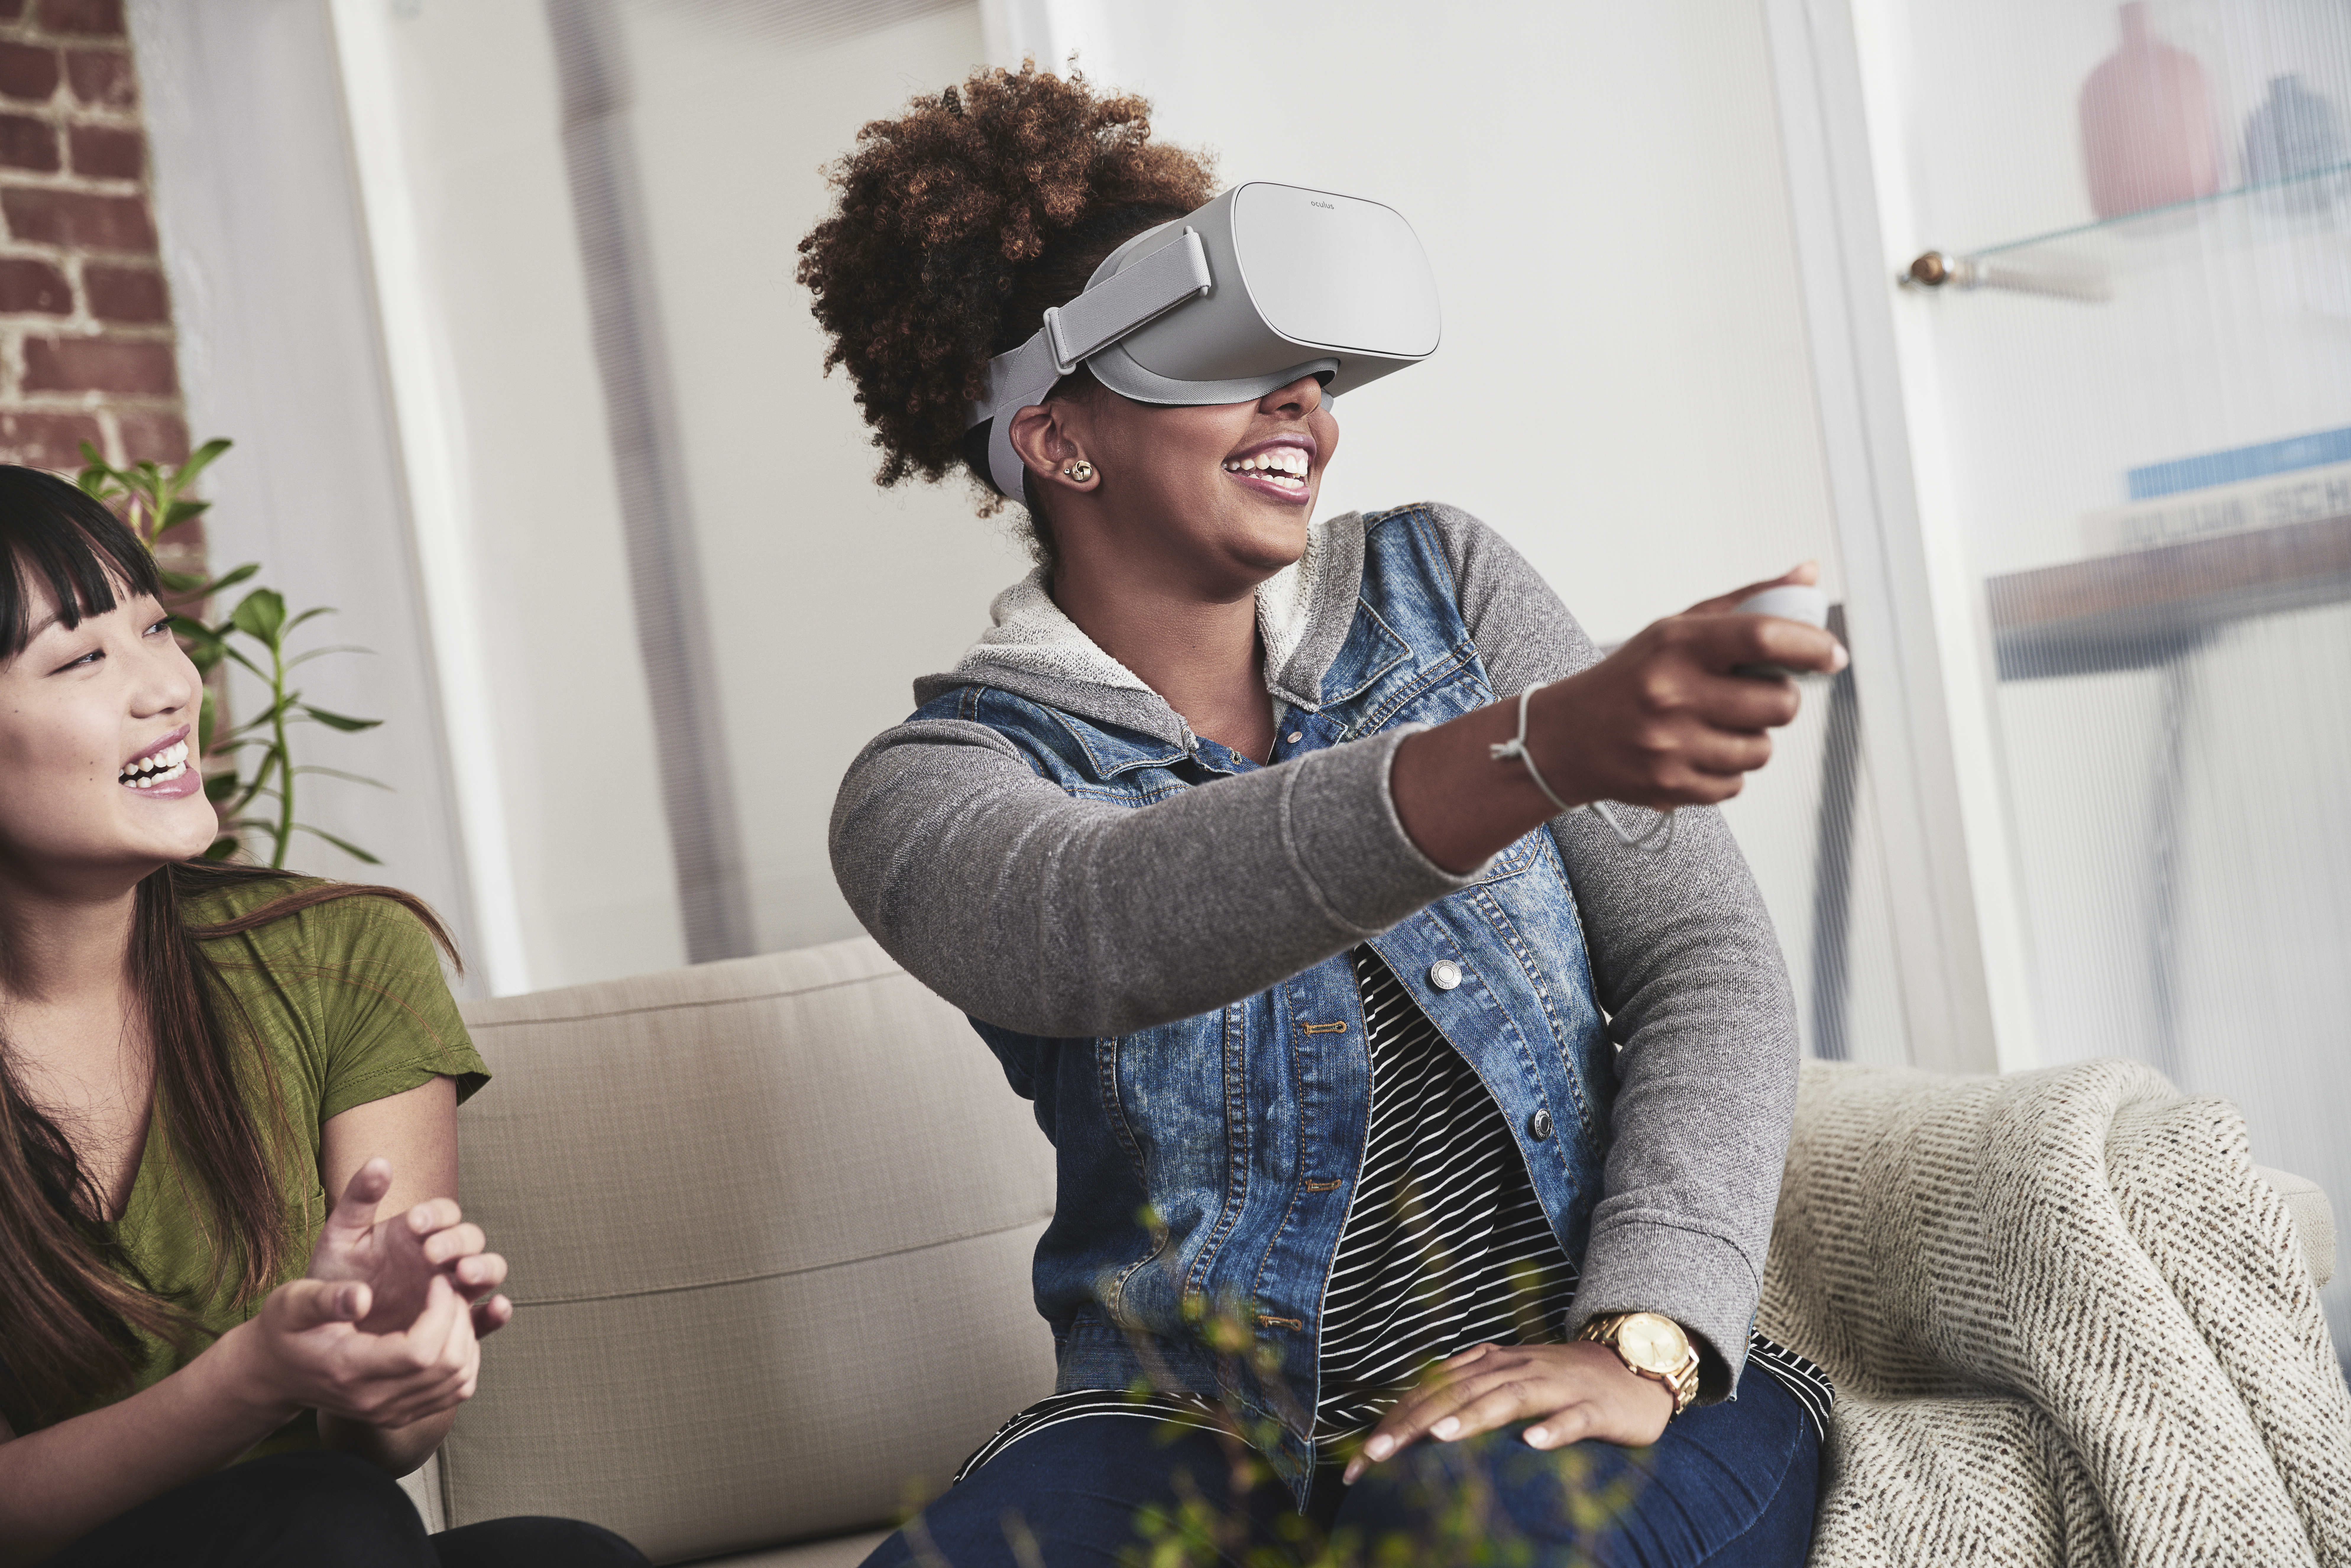 Here's What Playing With a VR Headset Is Actually Like